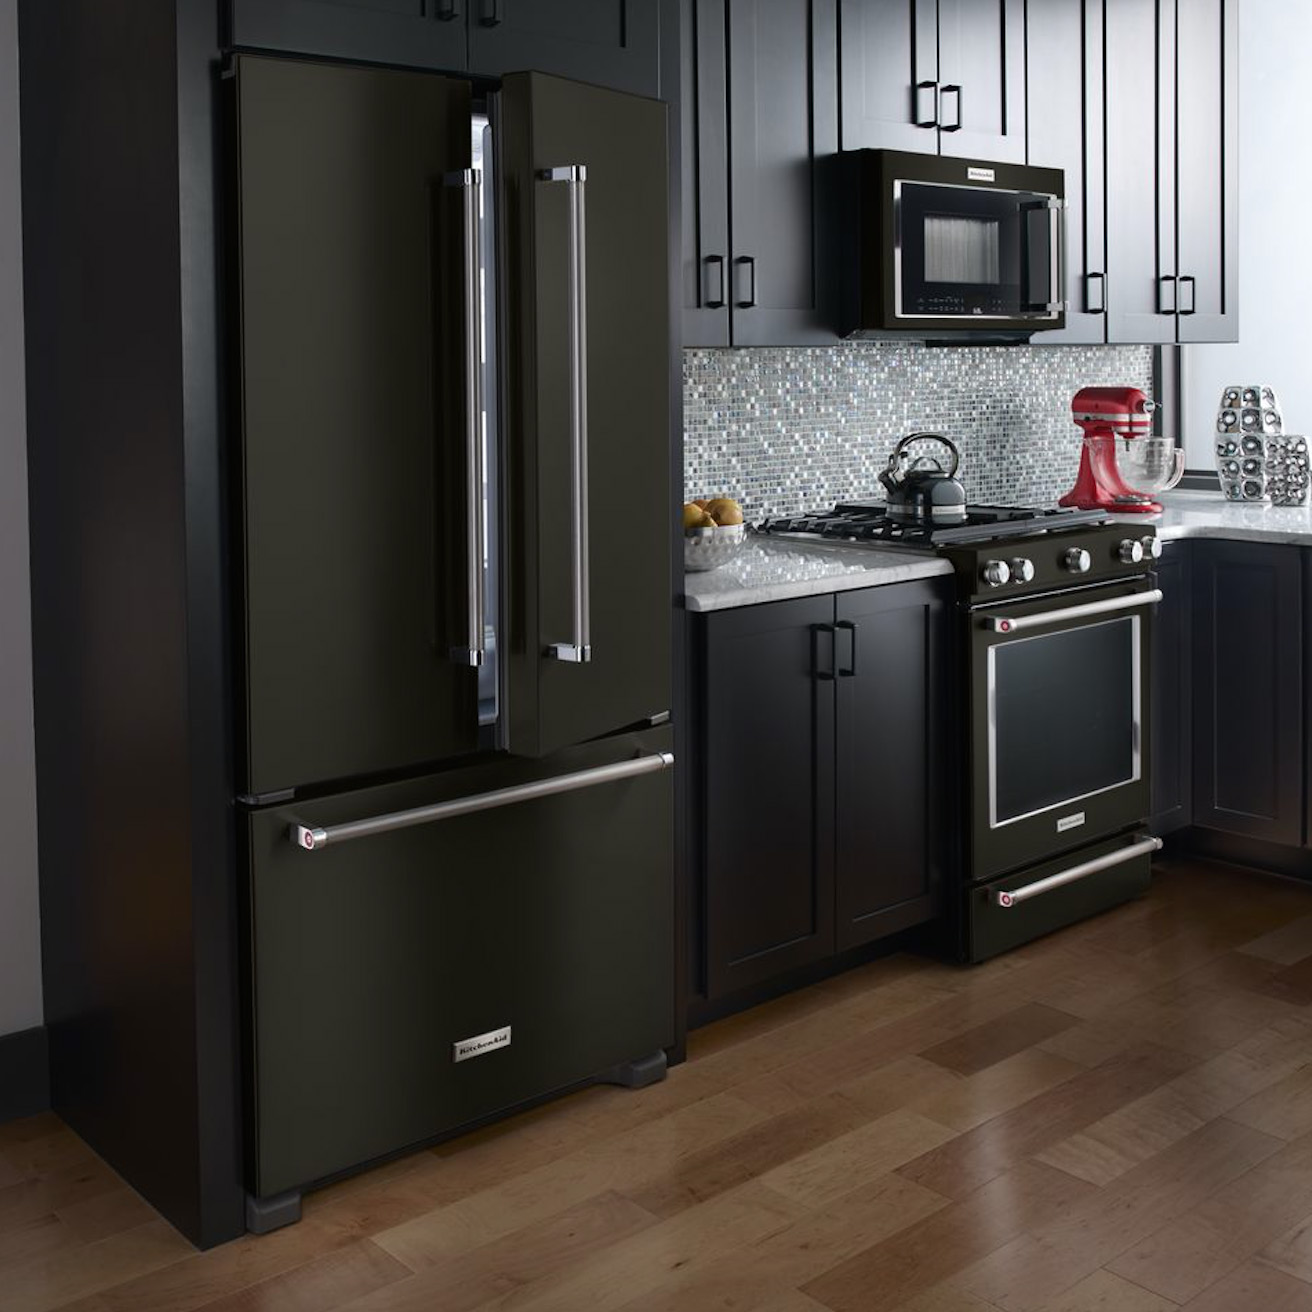 Look at These Beautiful Matte Black Major Appliances: Refrigerator, Ranges, Ovens and More